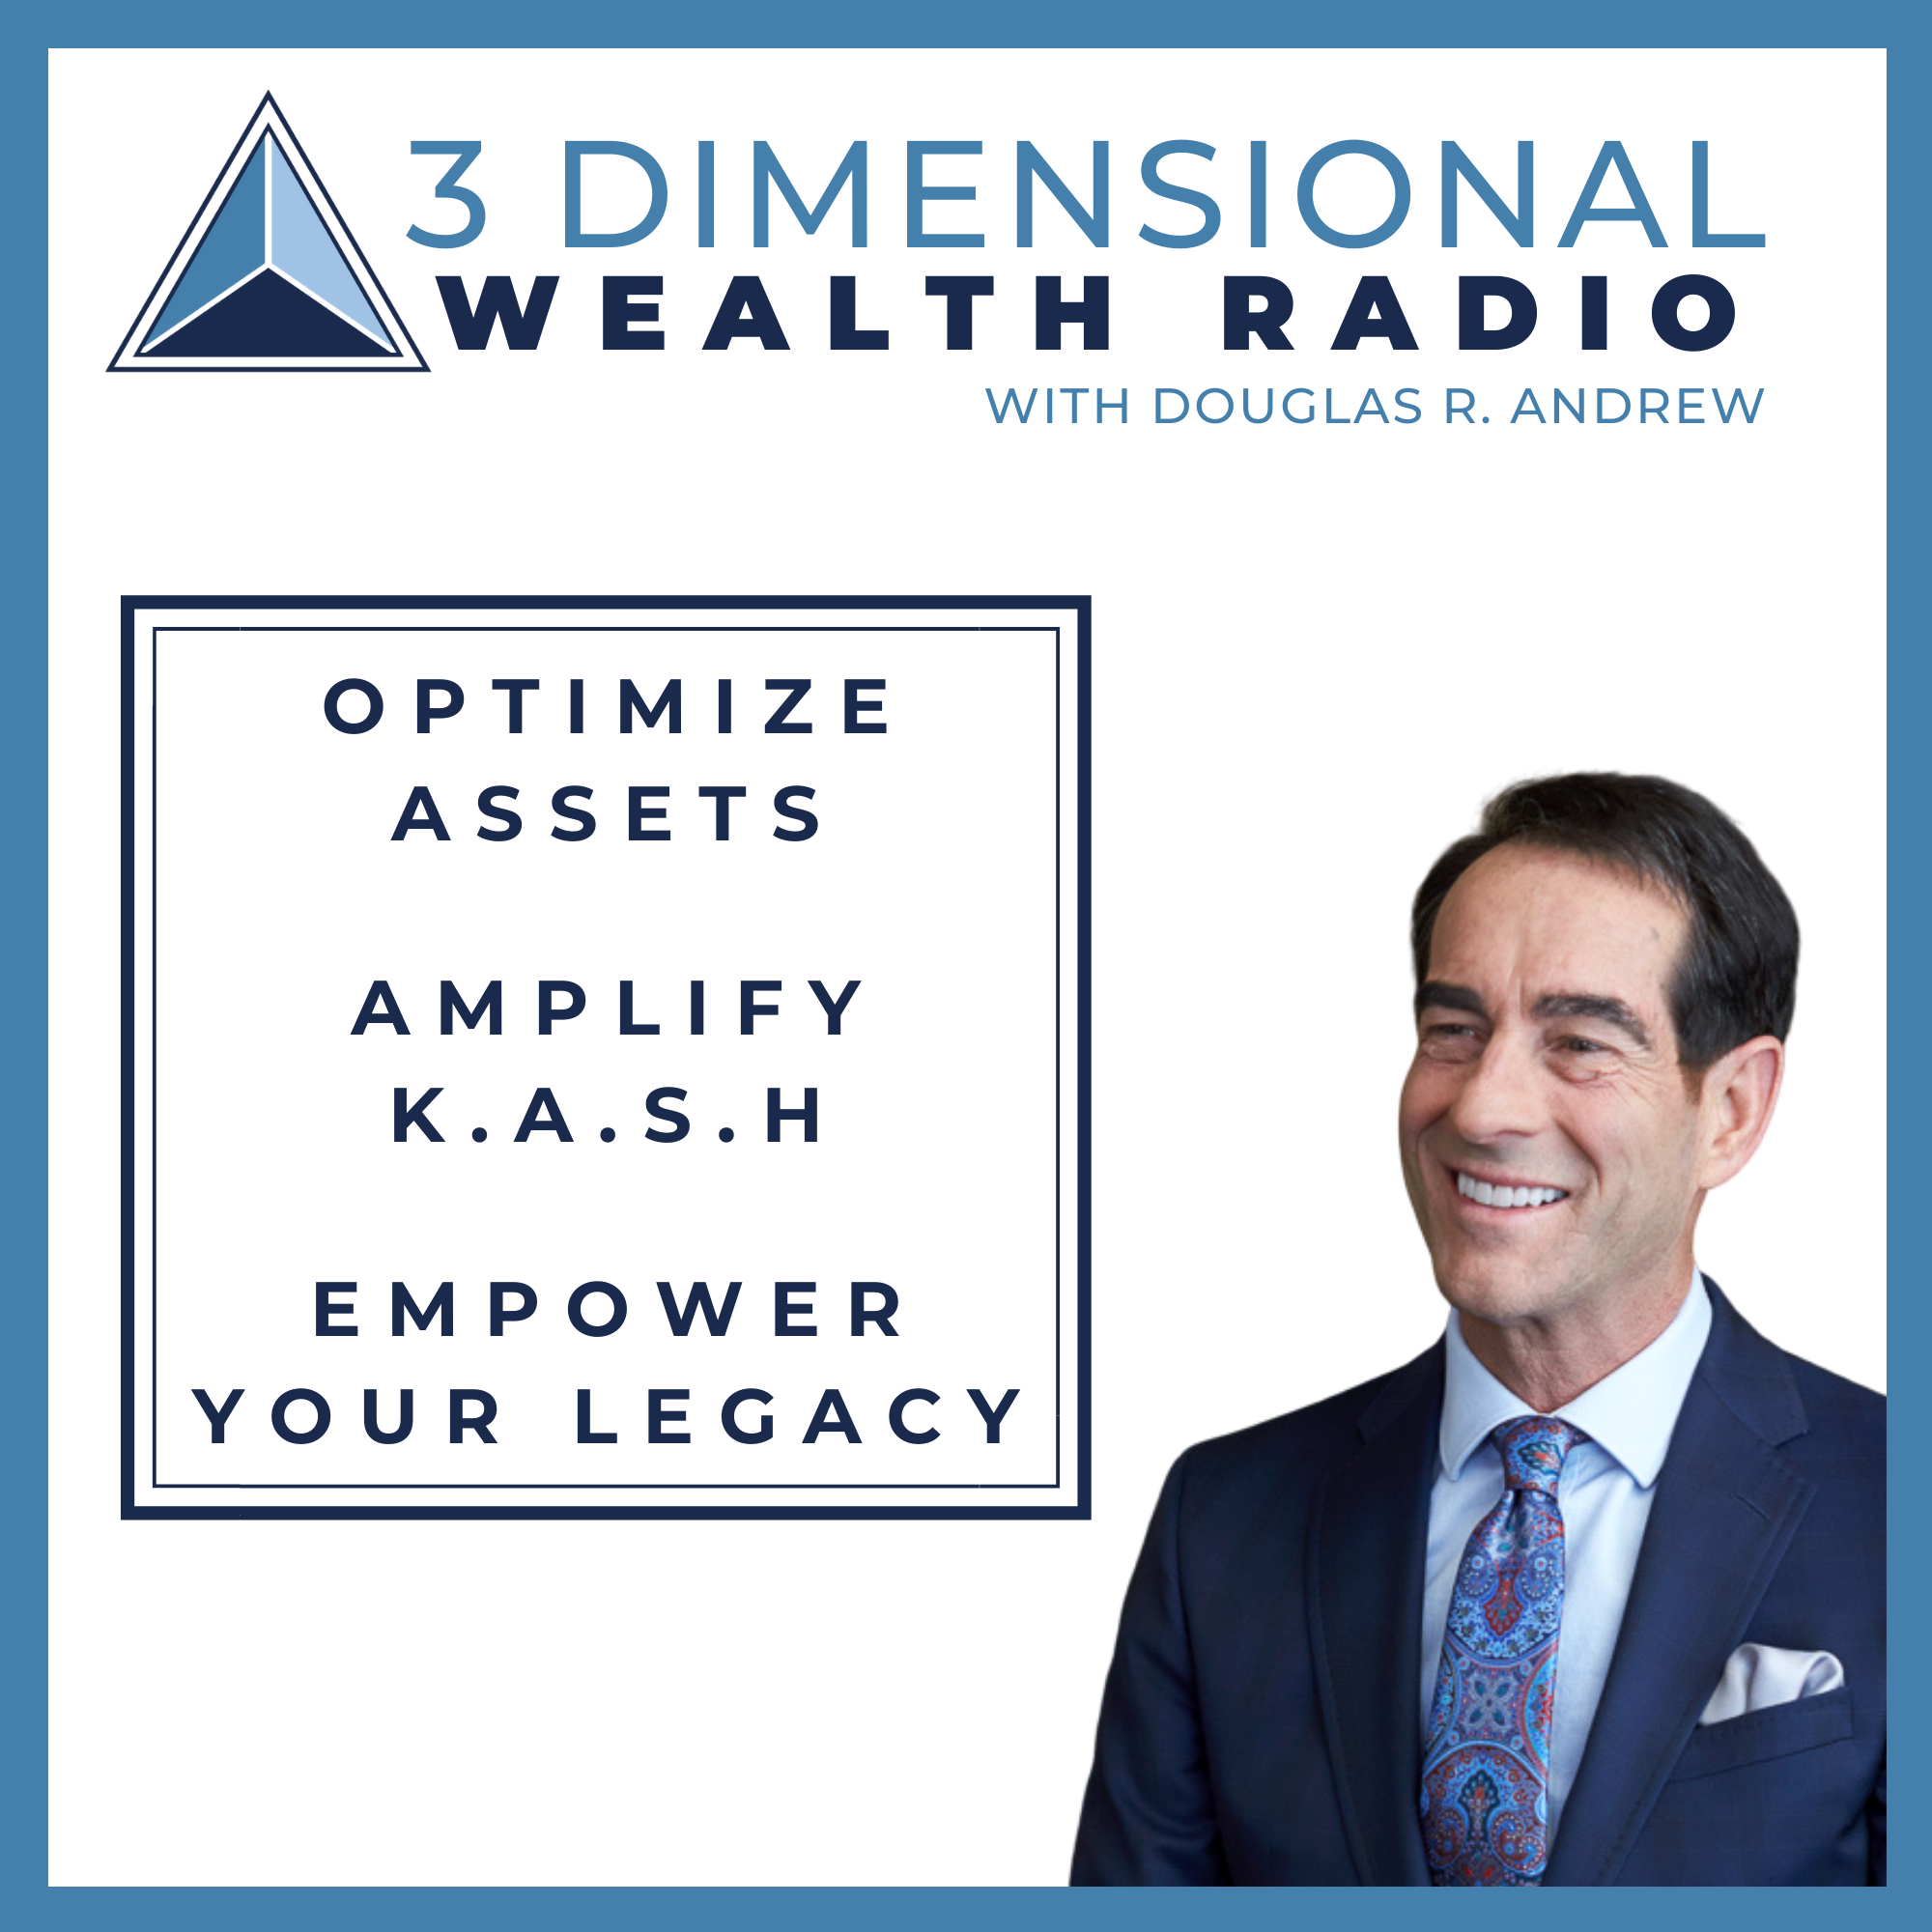 3 Dimensional Wealth Radio